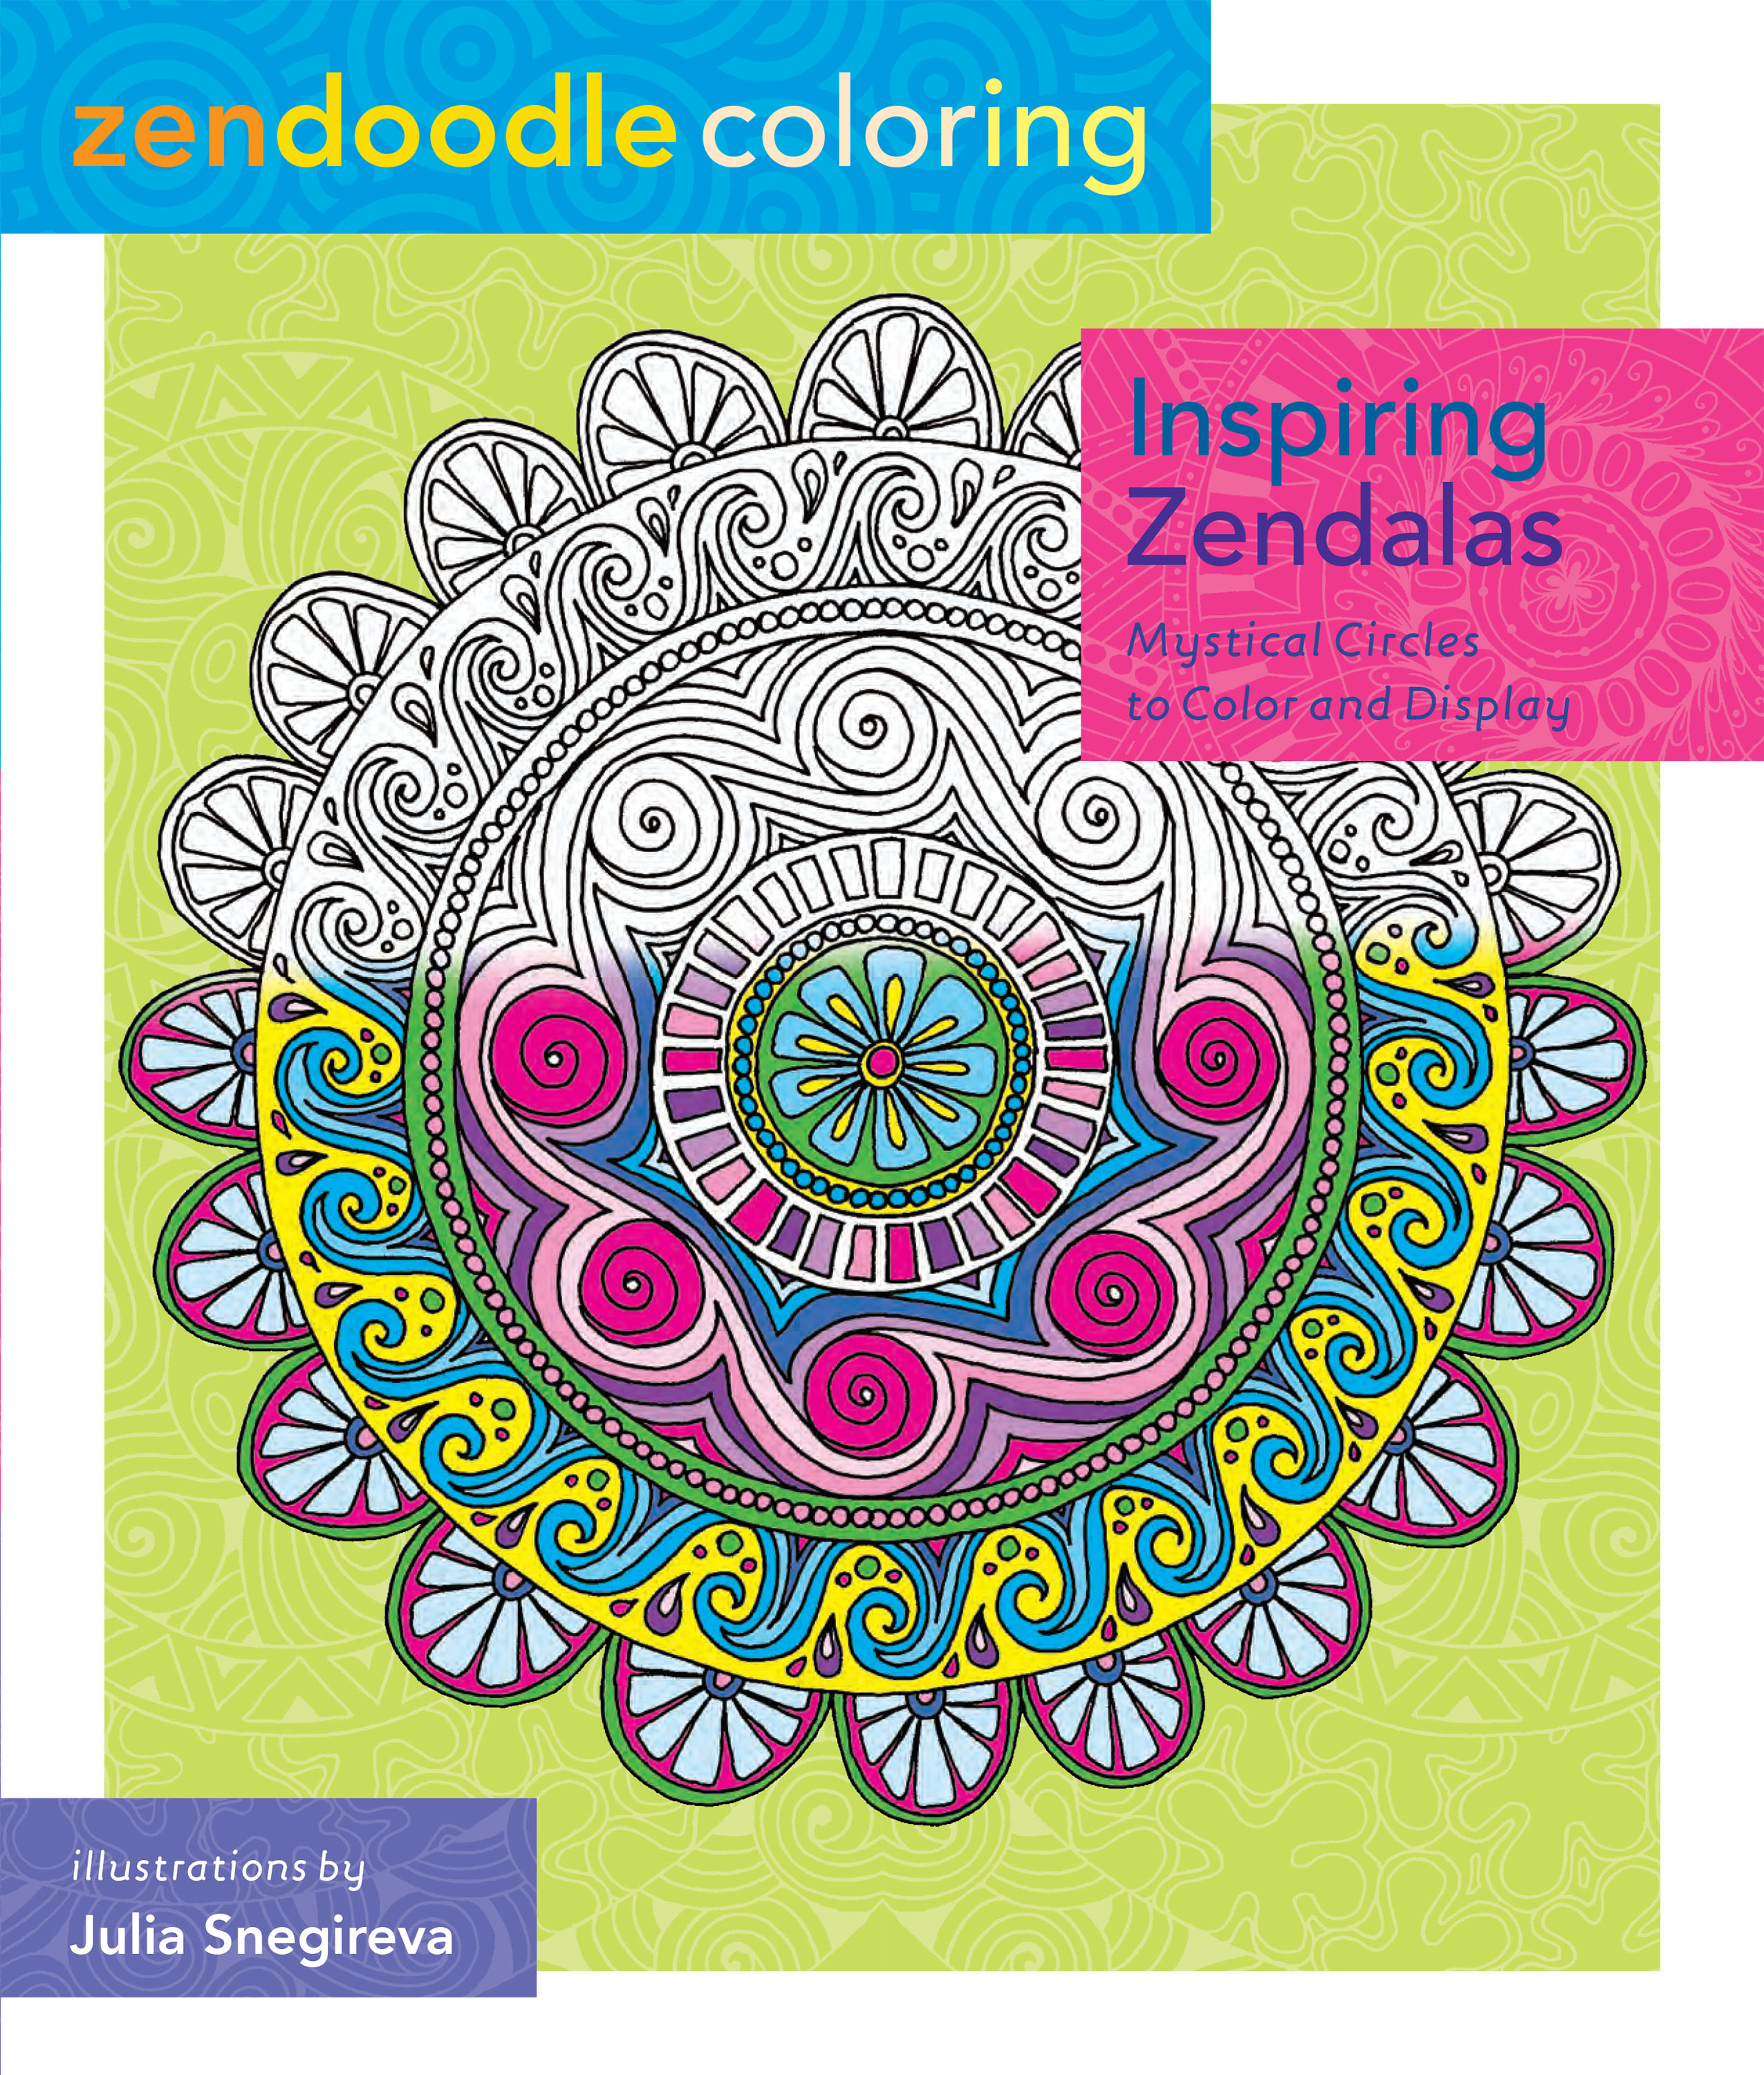 Zendoodle coloring enchanting gardens - Zendoodle Coloring Inspiring Zendalas Book Review Www Thestitchinmommy Com